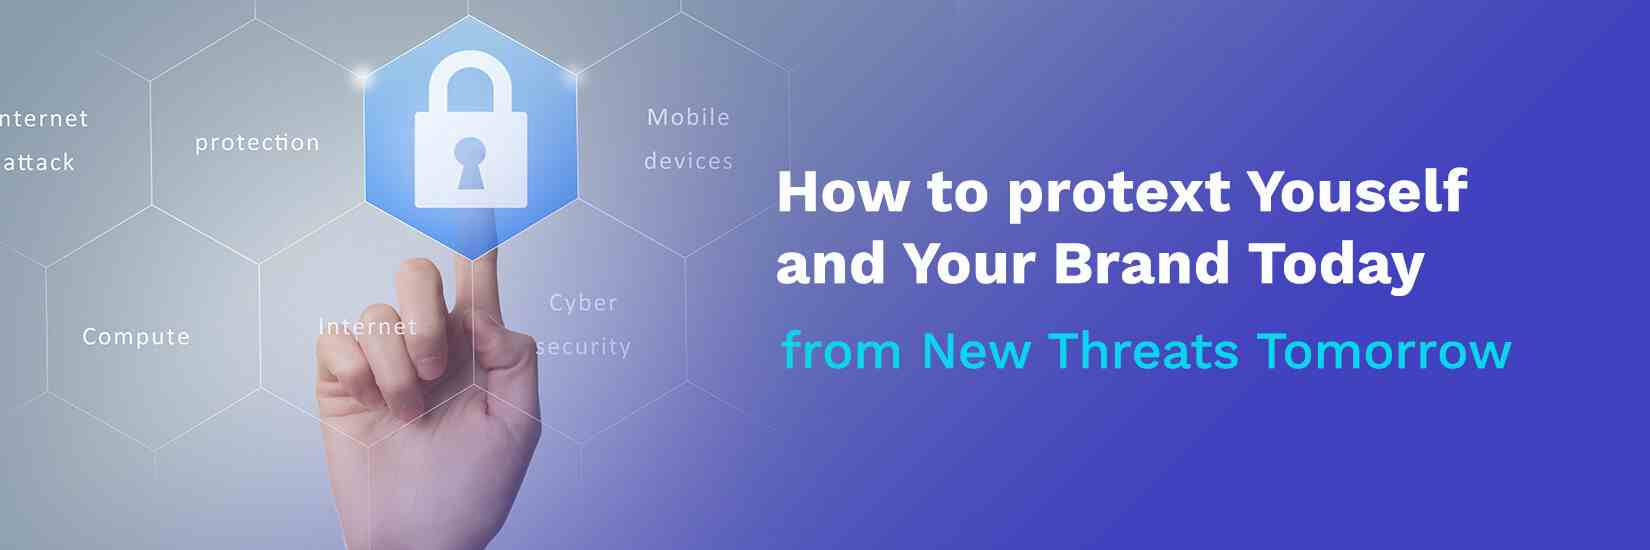 How to Protect Your Business from Cyber Threats Today